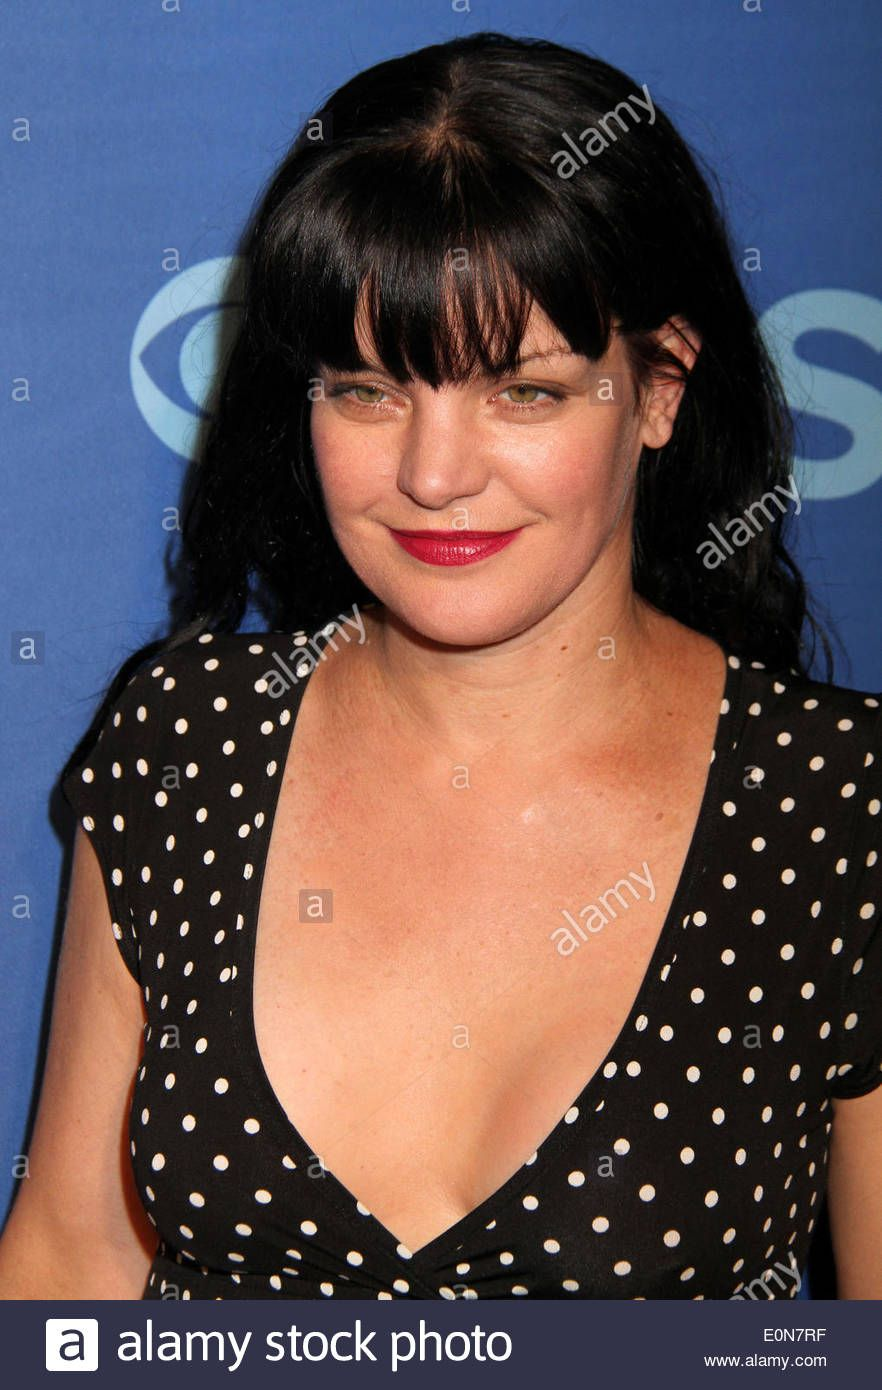 Abby Suto From Ncis Porn - Pin by Jeff Buckley on Pauley perrette   Pauley perrette, Ncis abby, Pauley  perette